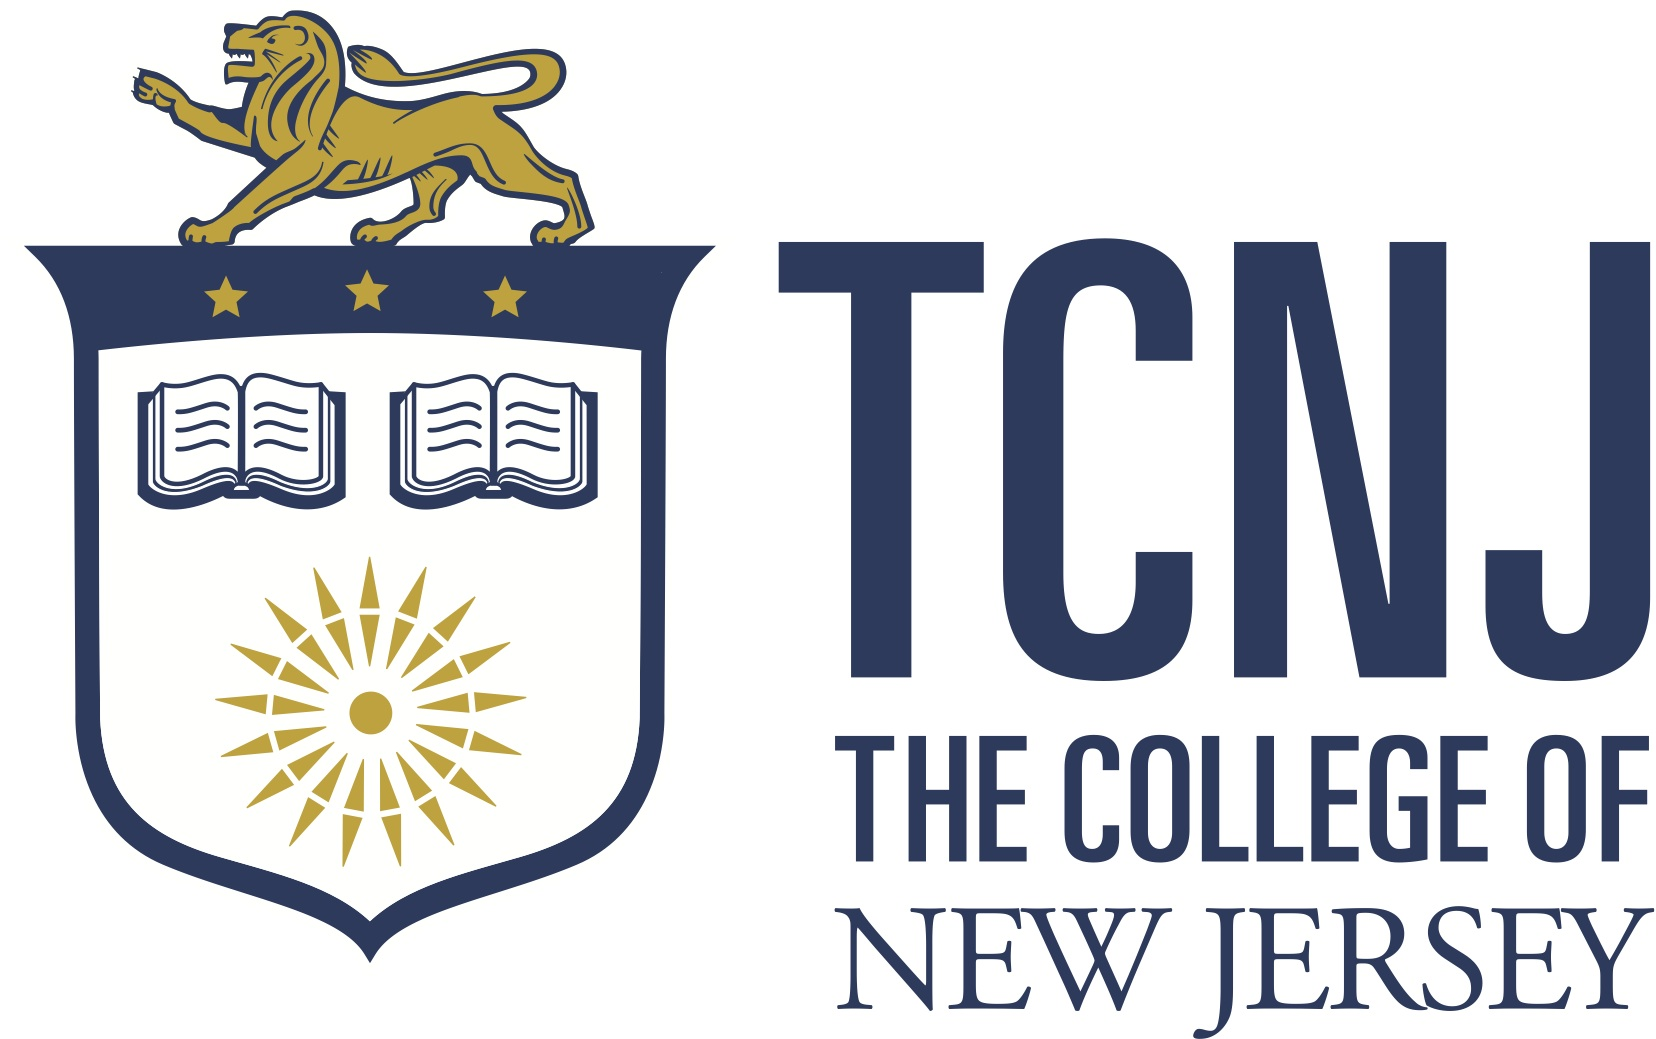 LOGO_The College of New Jersey.jpg